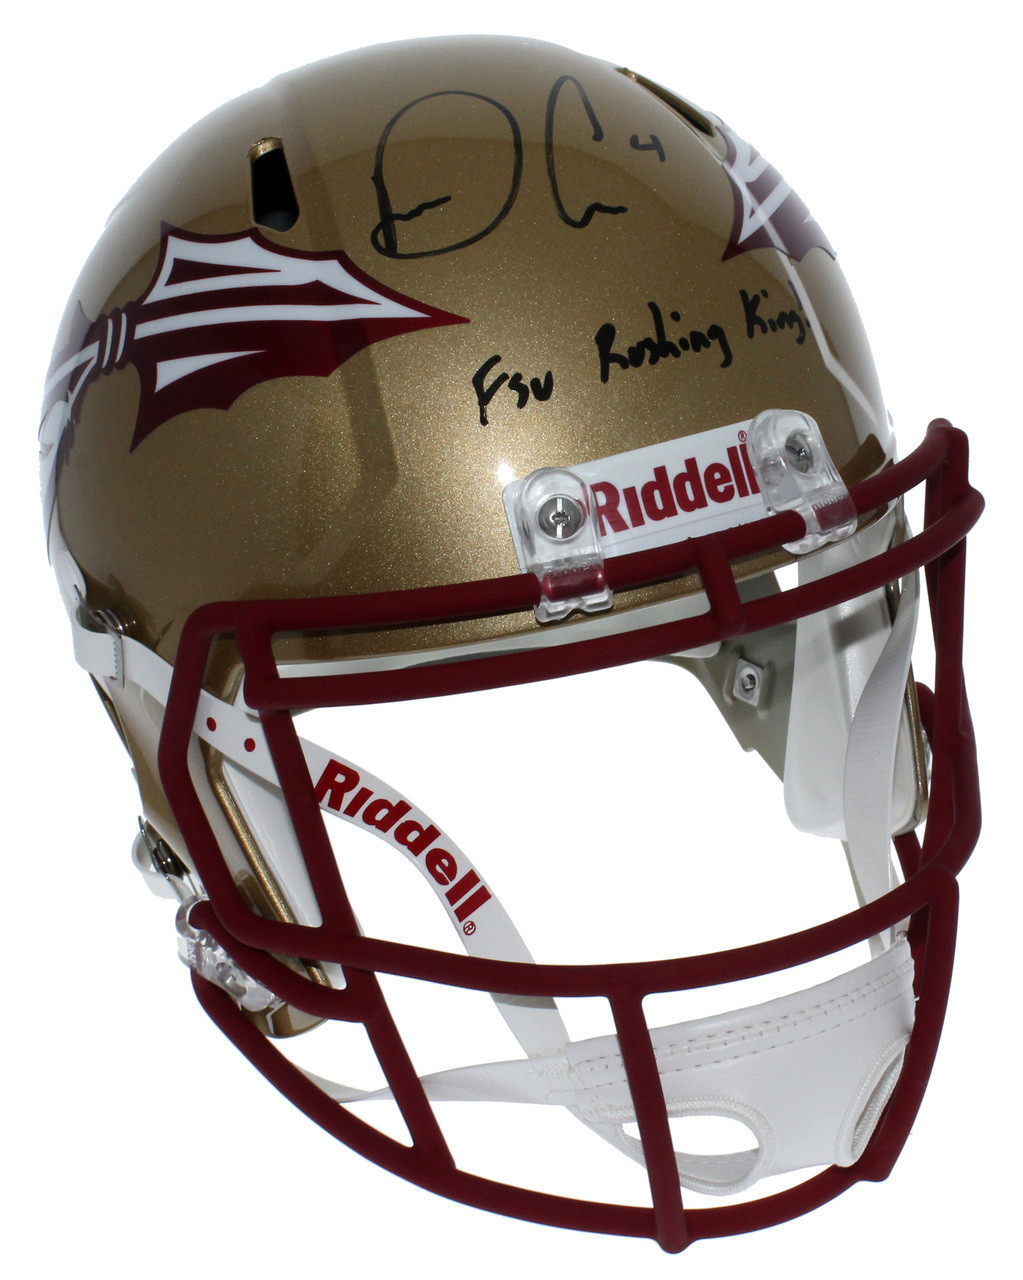 161fd523 Dalvin Cook Florida State Seminoles Autographed Riddell Full Size Speed  Replica Helmet with FSU Rushing King Inscription - JSA Authentic